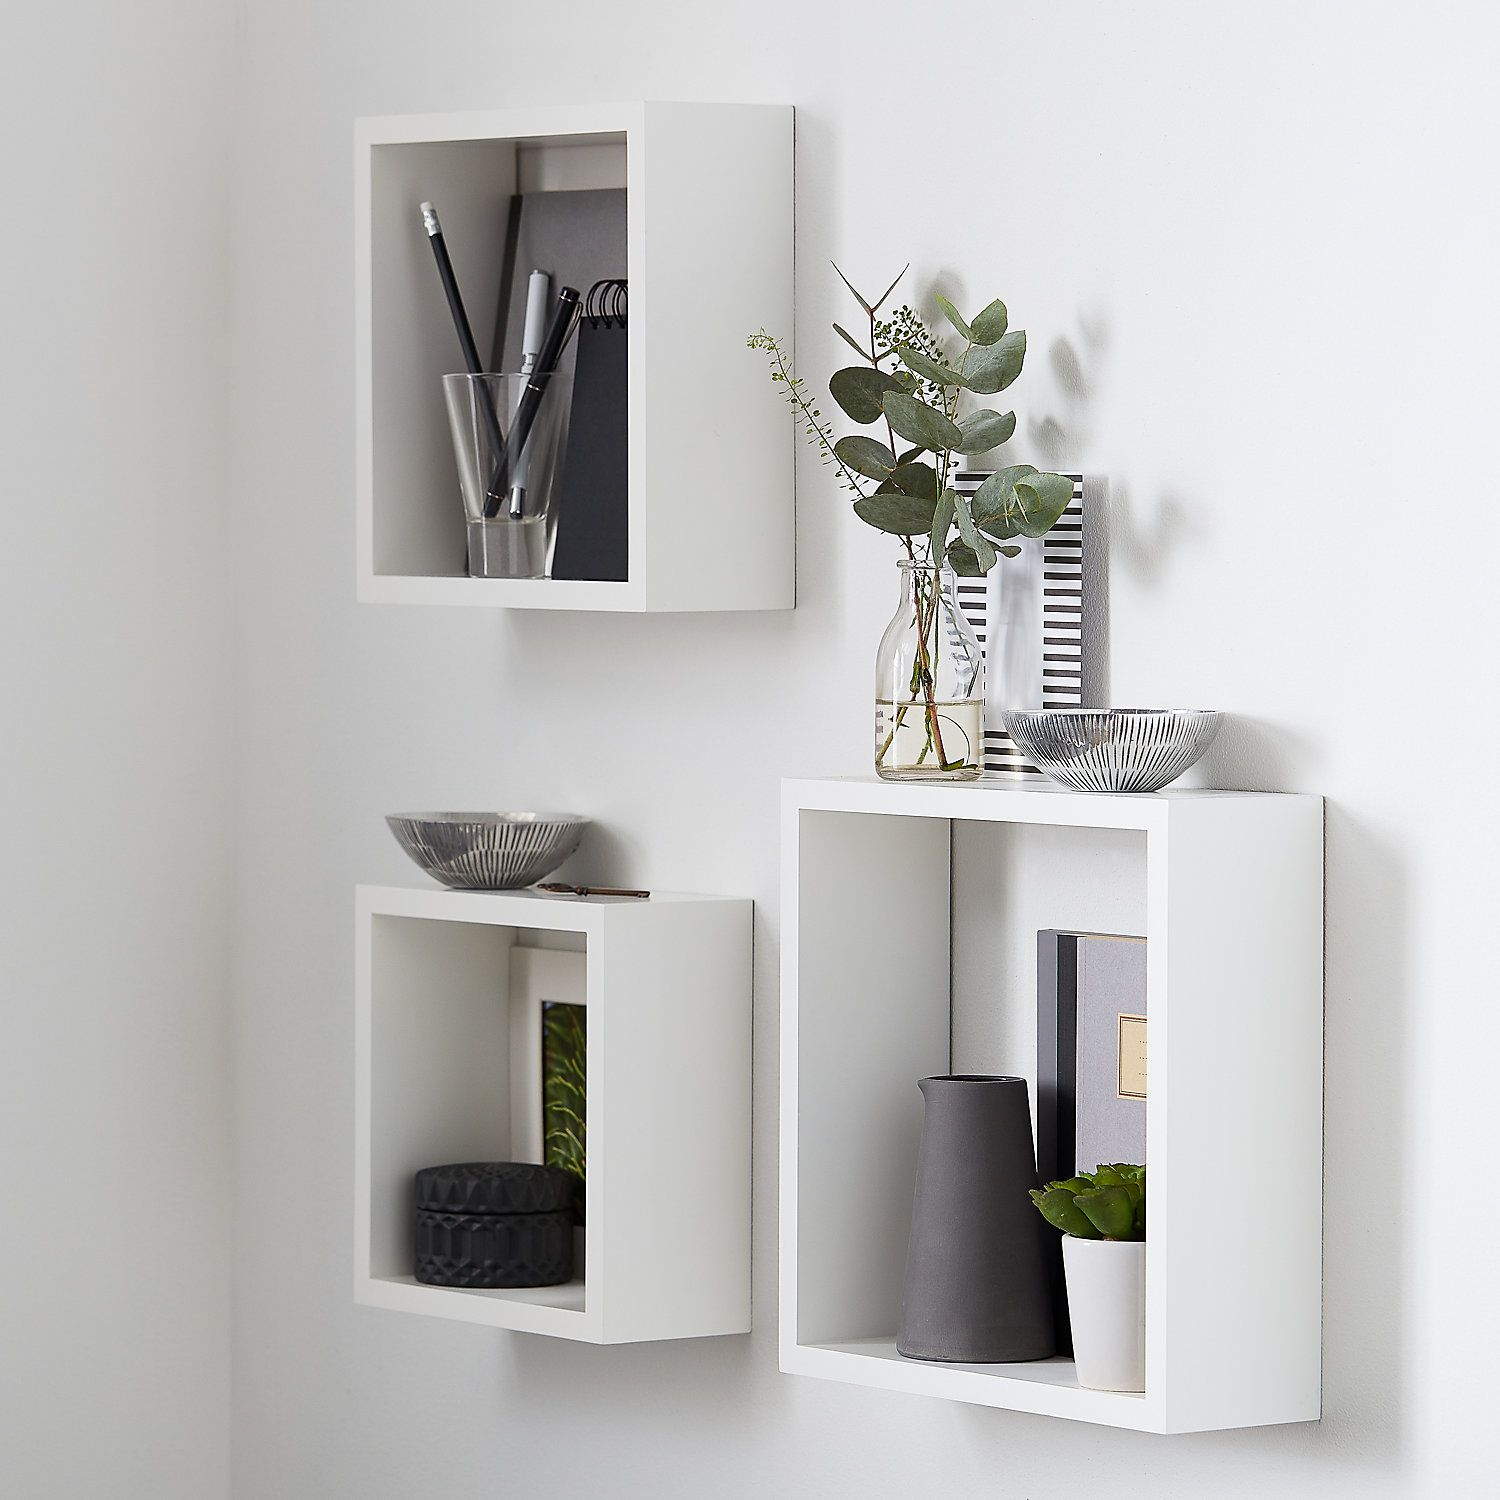 form rigga white cube shelves set floating shelf with drawer kitchen cabinet can storage hall stand ikea office closet shelving computer desk side table linen spacing cable wall